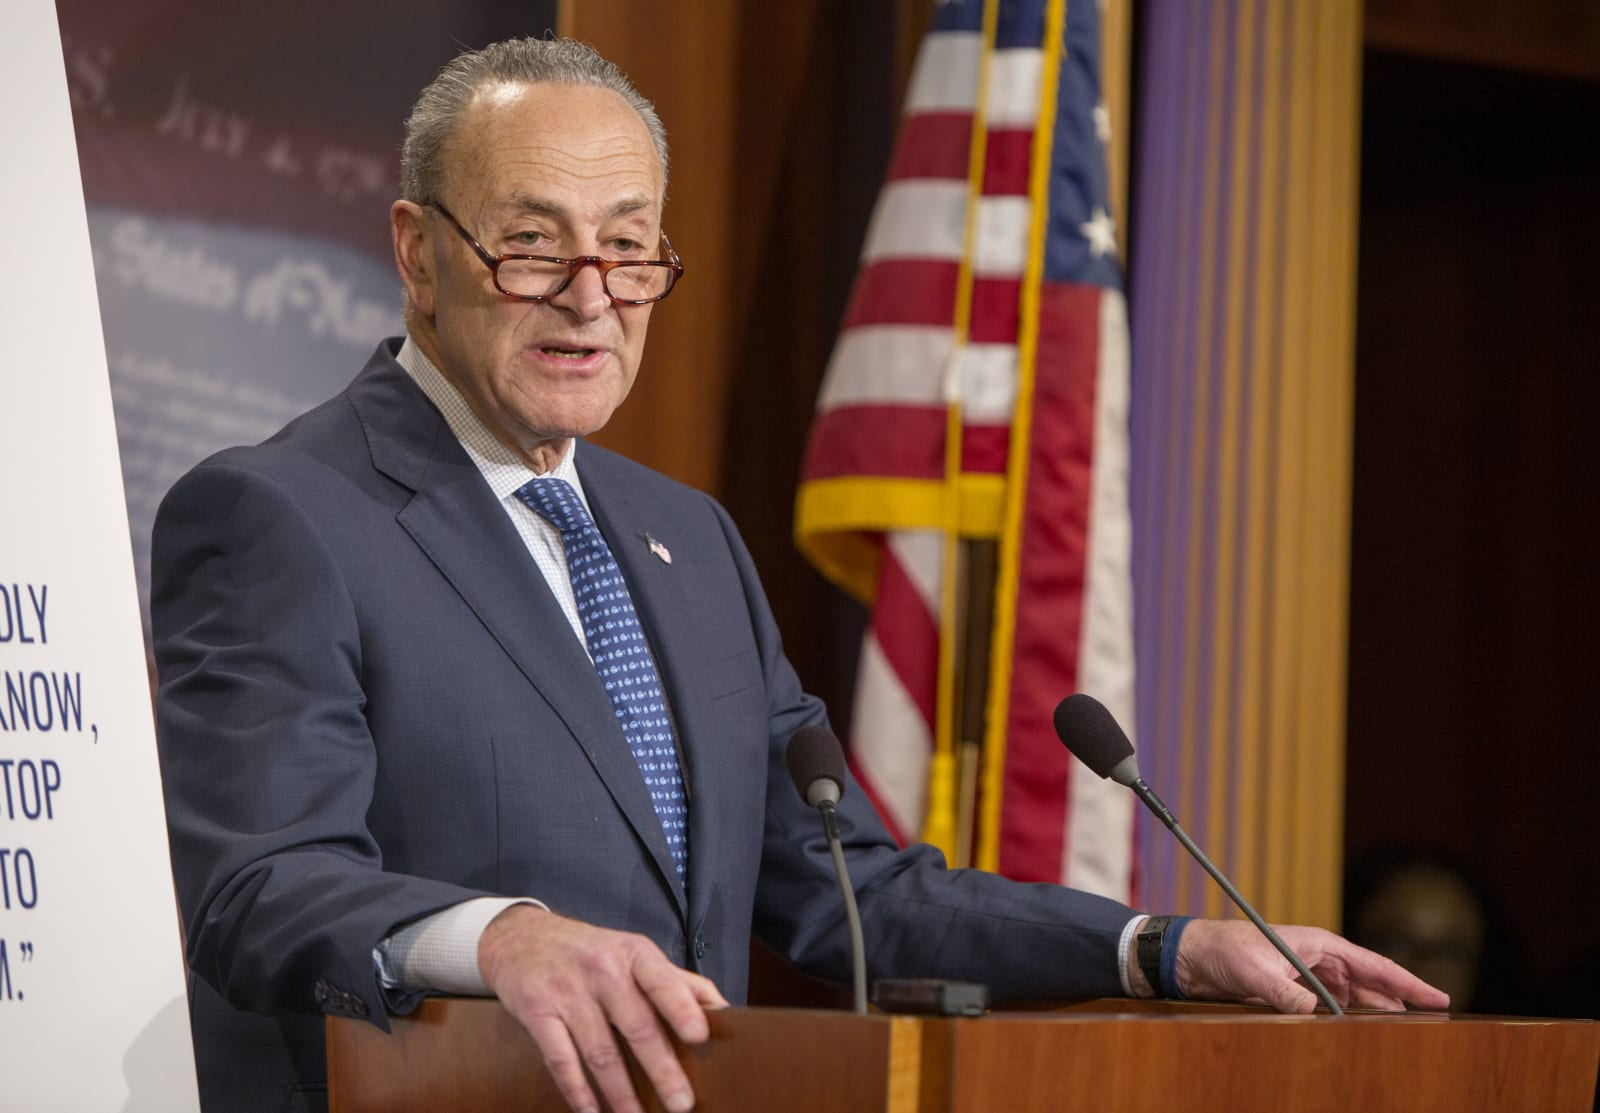 Senate Democratic Leader Sen. Chuck Schumer (D-NY) Urges GOP To Slow Down Republican Tax Bill In Senate